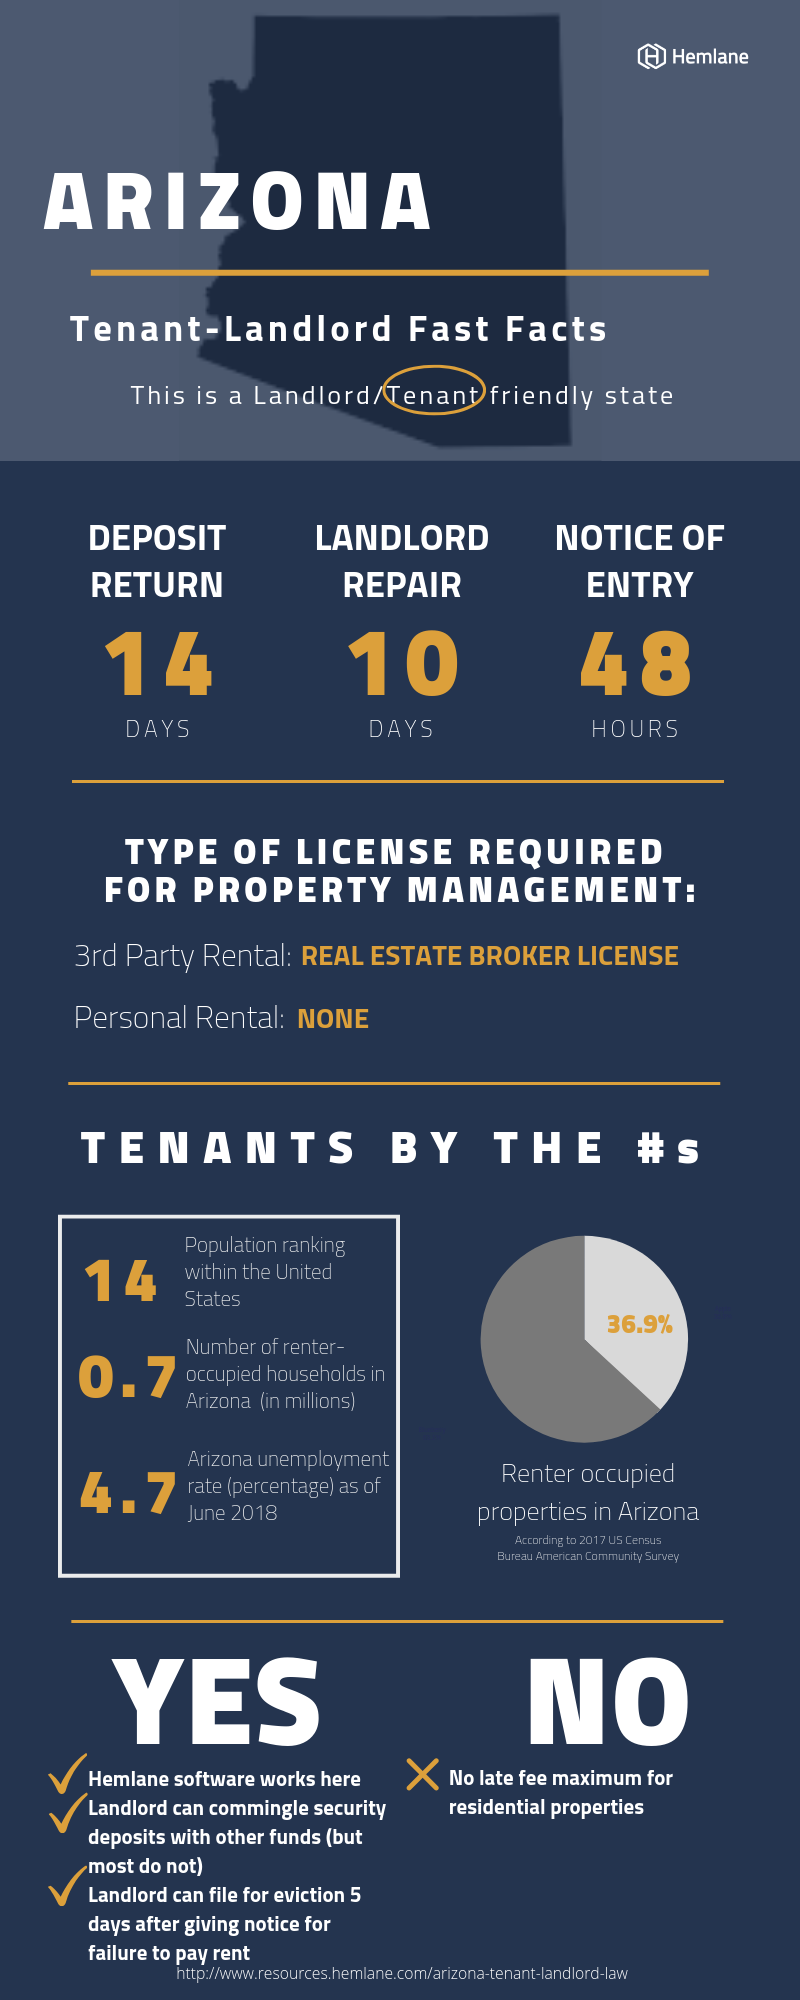 [Arizona-Tenant-Landlord-Law-Fast-Facts]